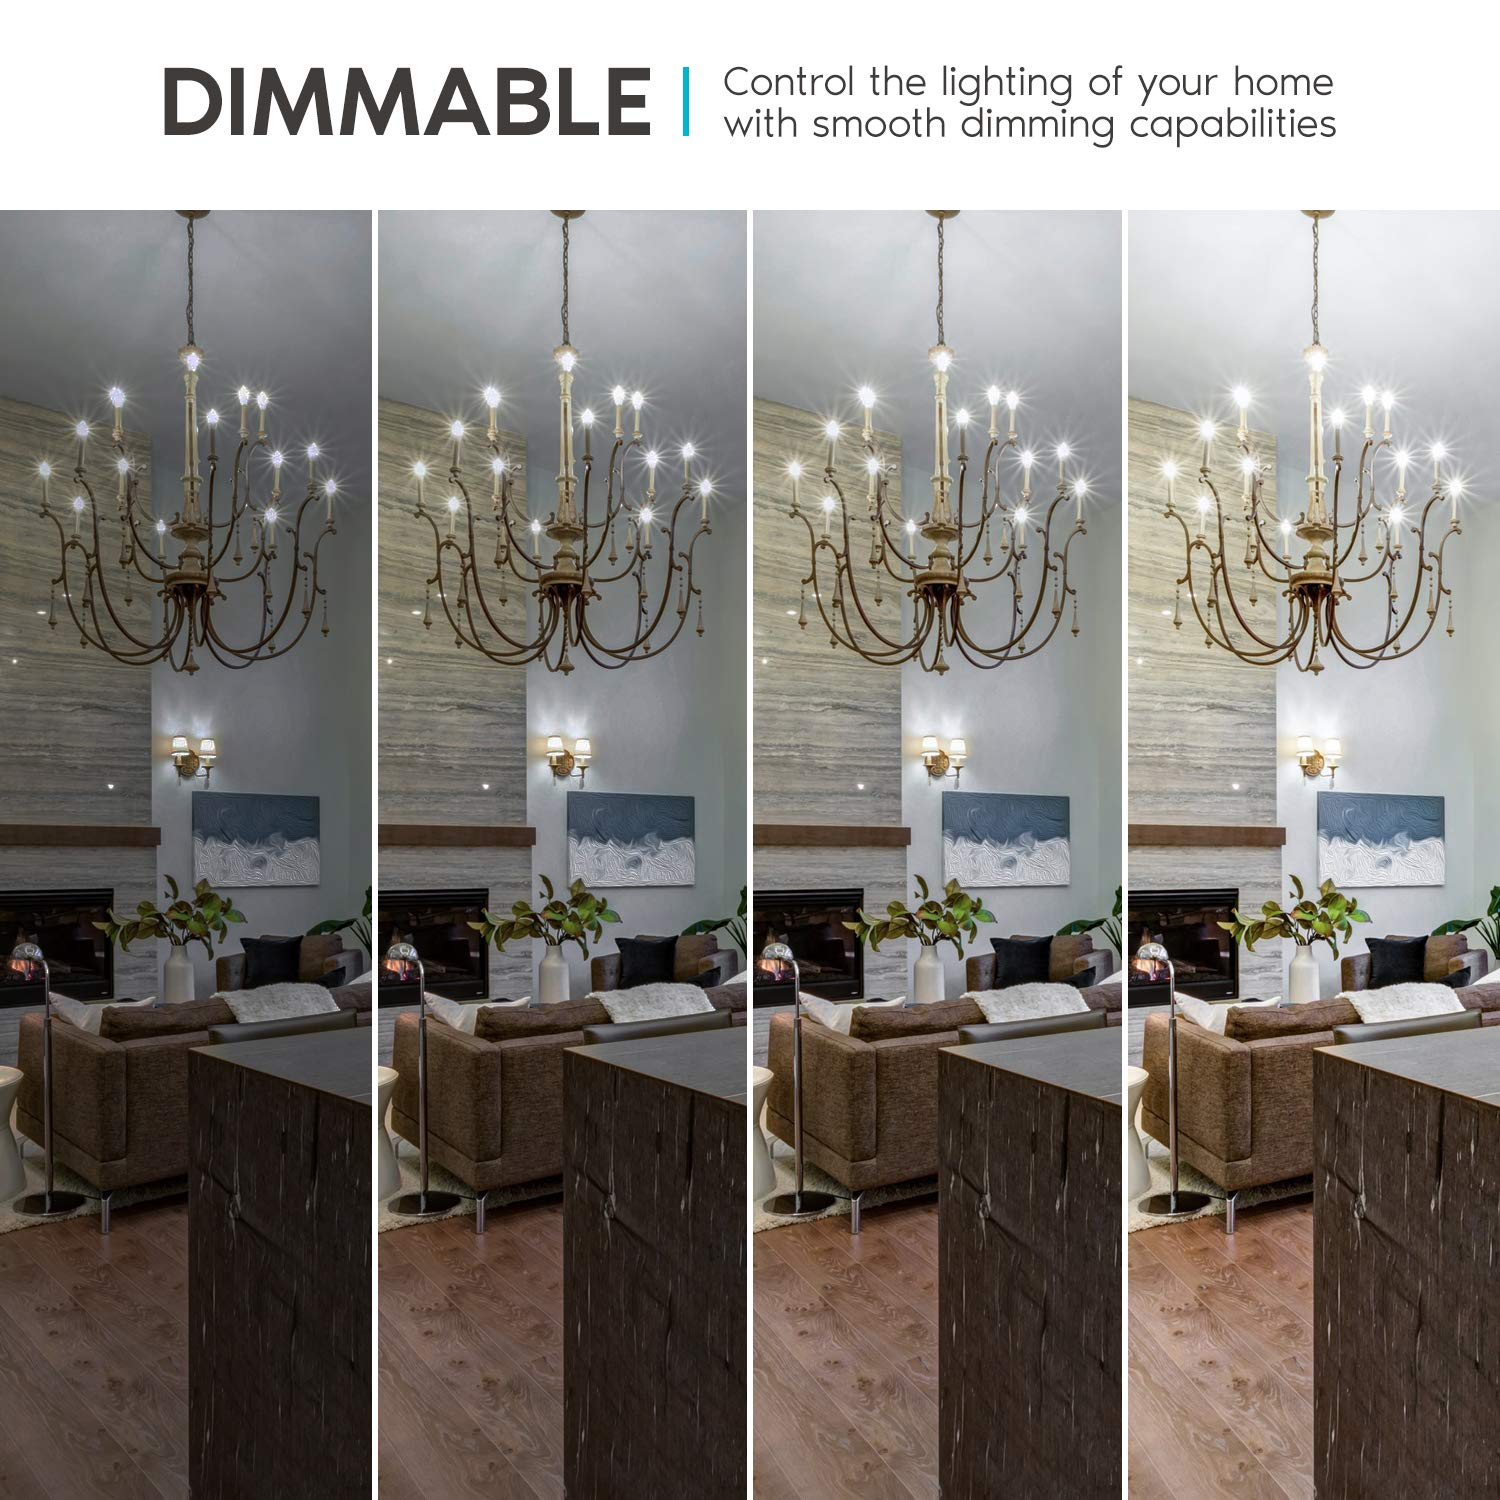 Luxrite 4W Vintage Candelabra LED Bulbs Dimmable LR21225-12 UL Listed 12 Pack E12 LED Bulb 40W Equivalent 450 Lumens Edison Filament LED Candle Bulb 5000K Bright White Torpedo Tip Clear Glass